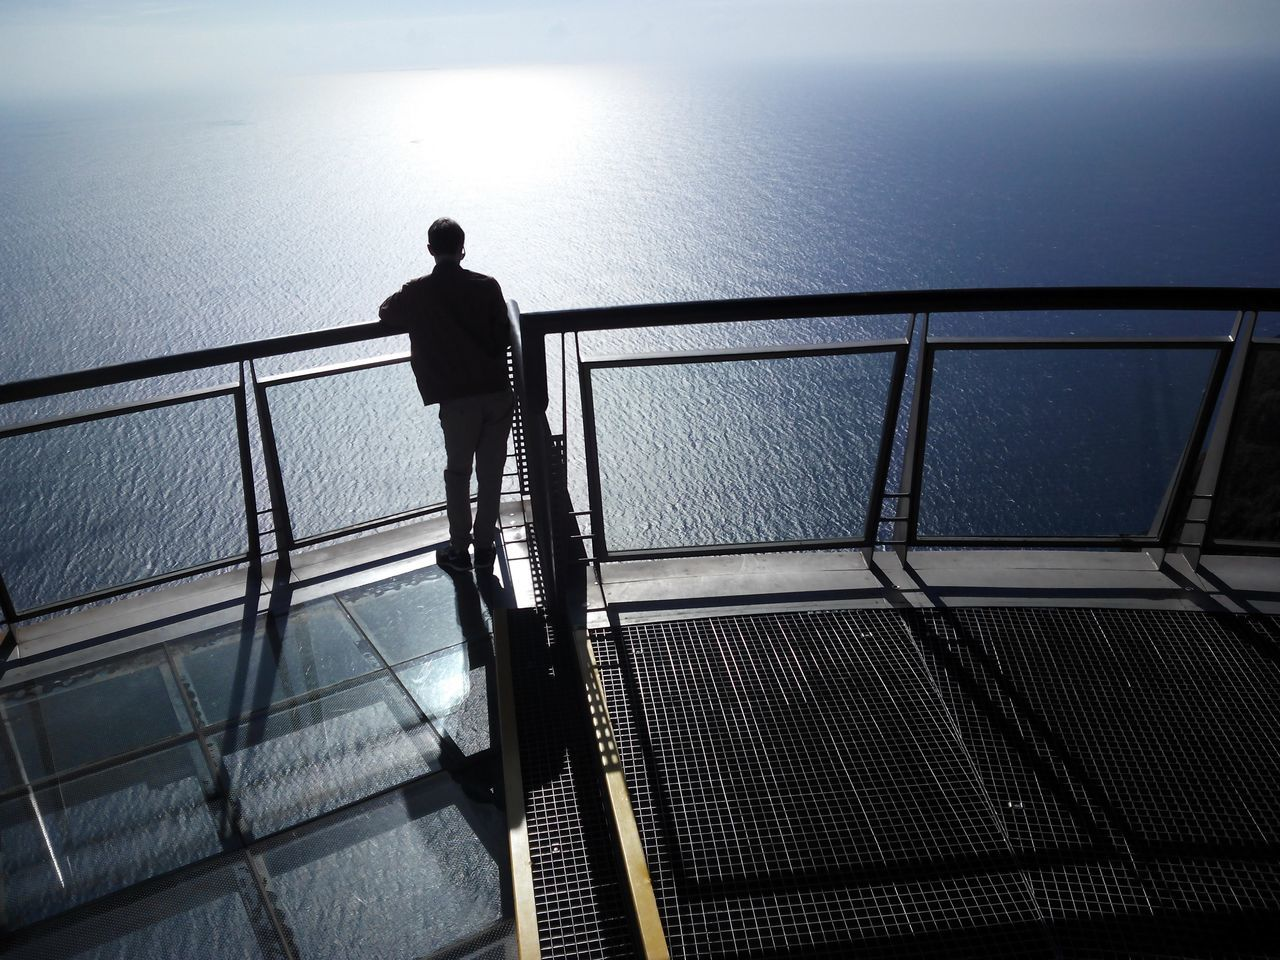 Railing sea water men Rear view Standing solitude Tranquility tranquil scene tourism outdoors day sky Vacations scenics the way forward beauty in Nature Tourist Attraction Tourist Clifftop glass balcony birds eye view Madeira